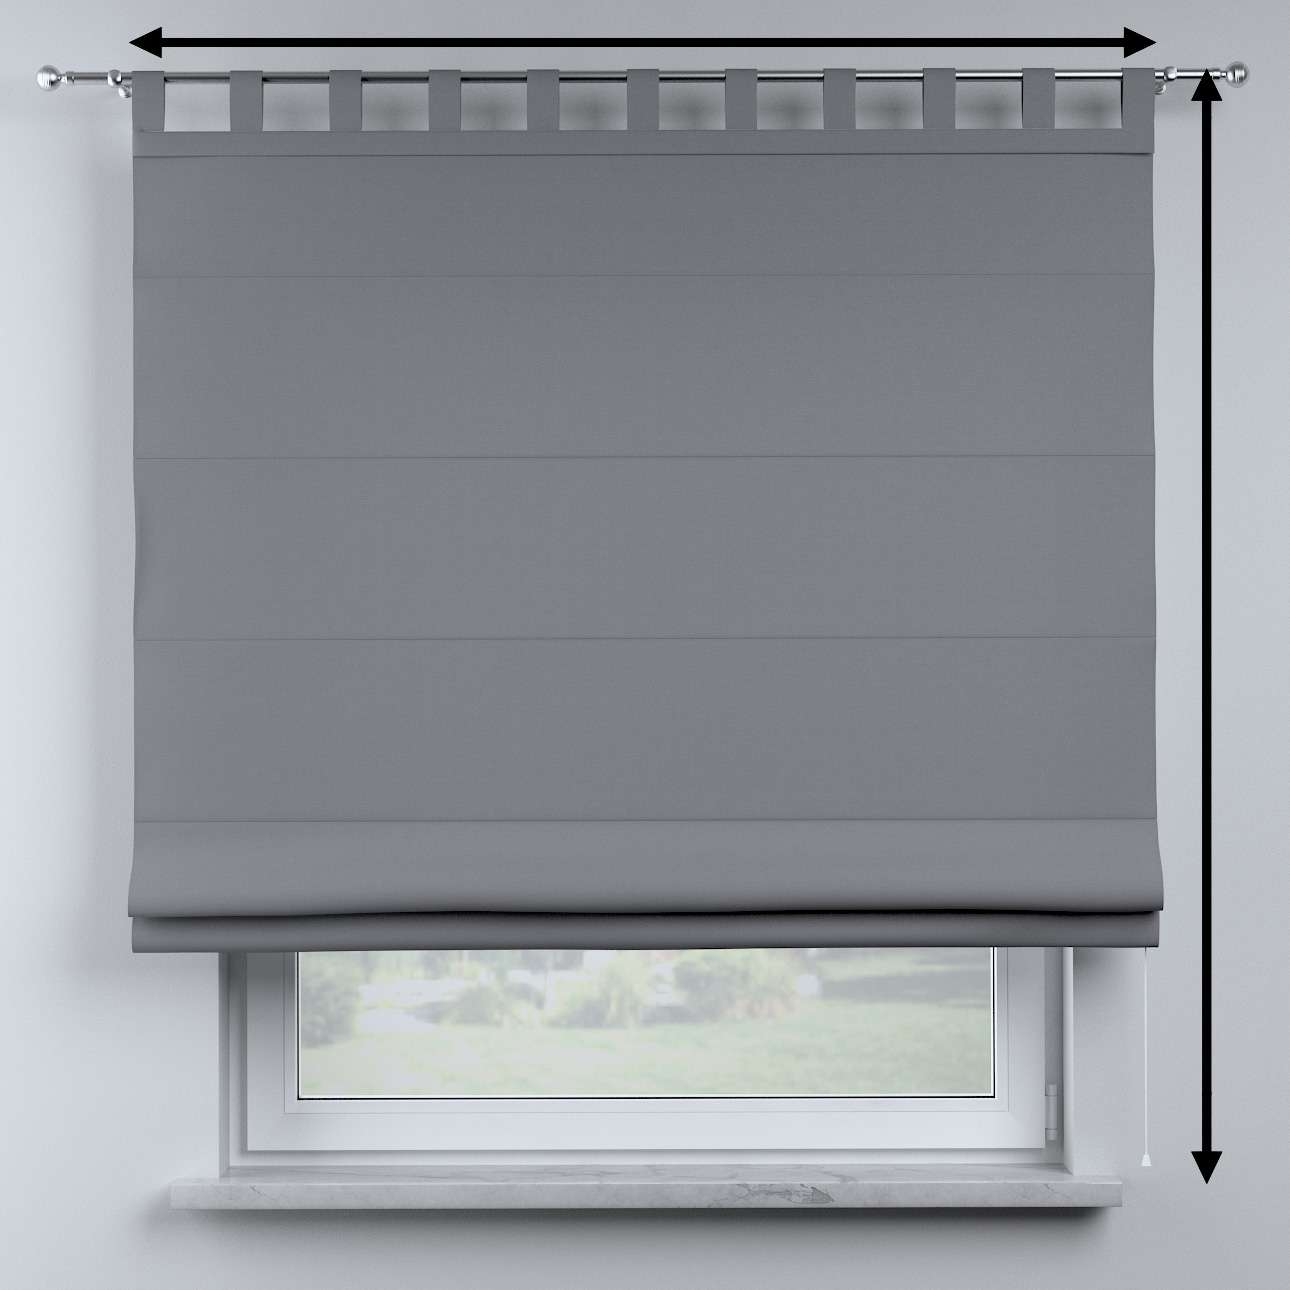 Oli tab top roman blind in collection Cotton Story, fabric: 702-07